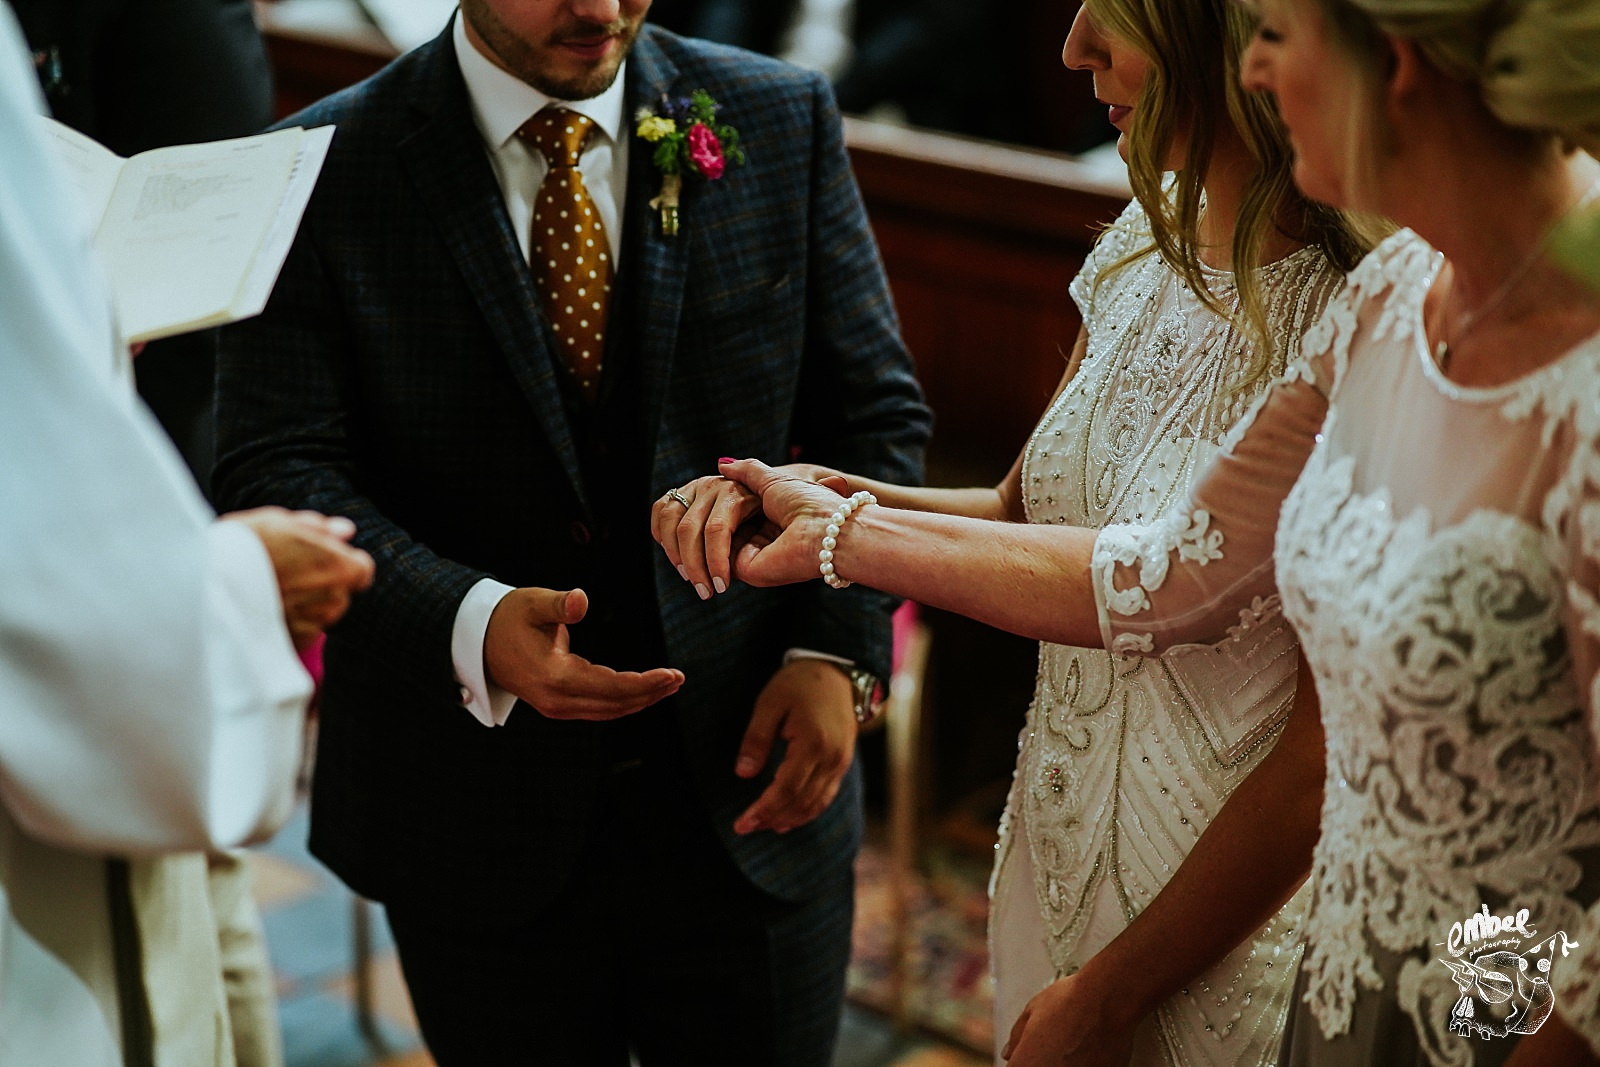 mum gives hand of the bride to groom